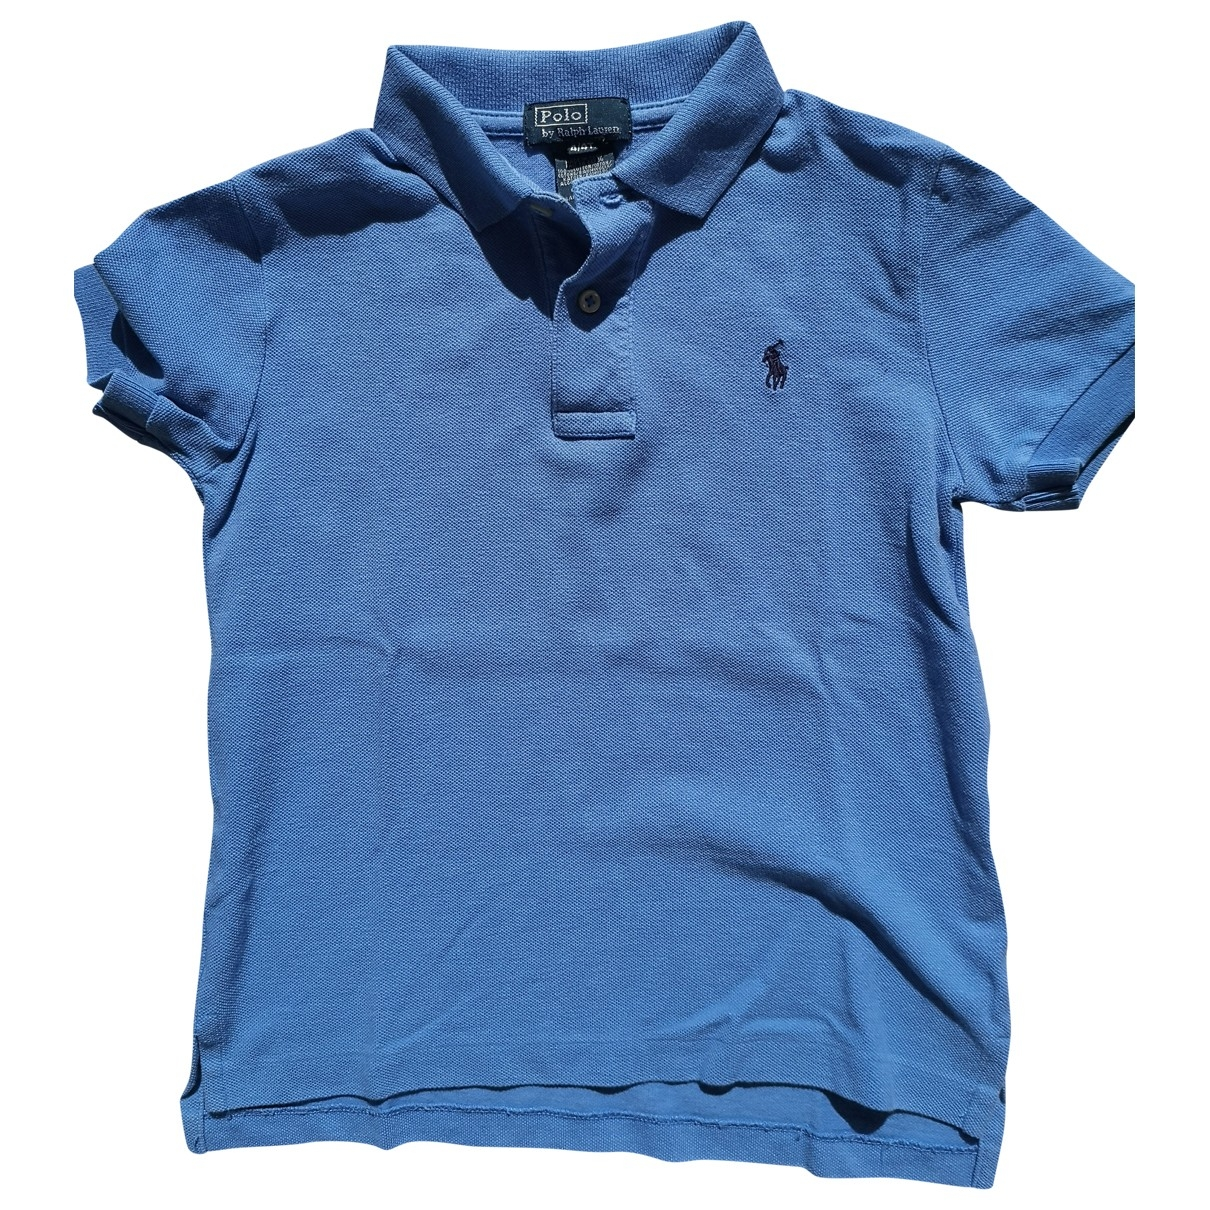 Polo Ralph Lauren \N Blue Cotton  top for Kids 4 years - until 40 inches UK